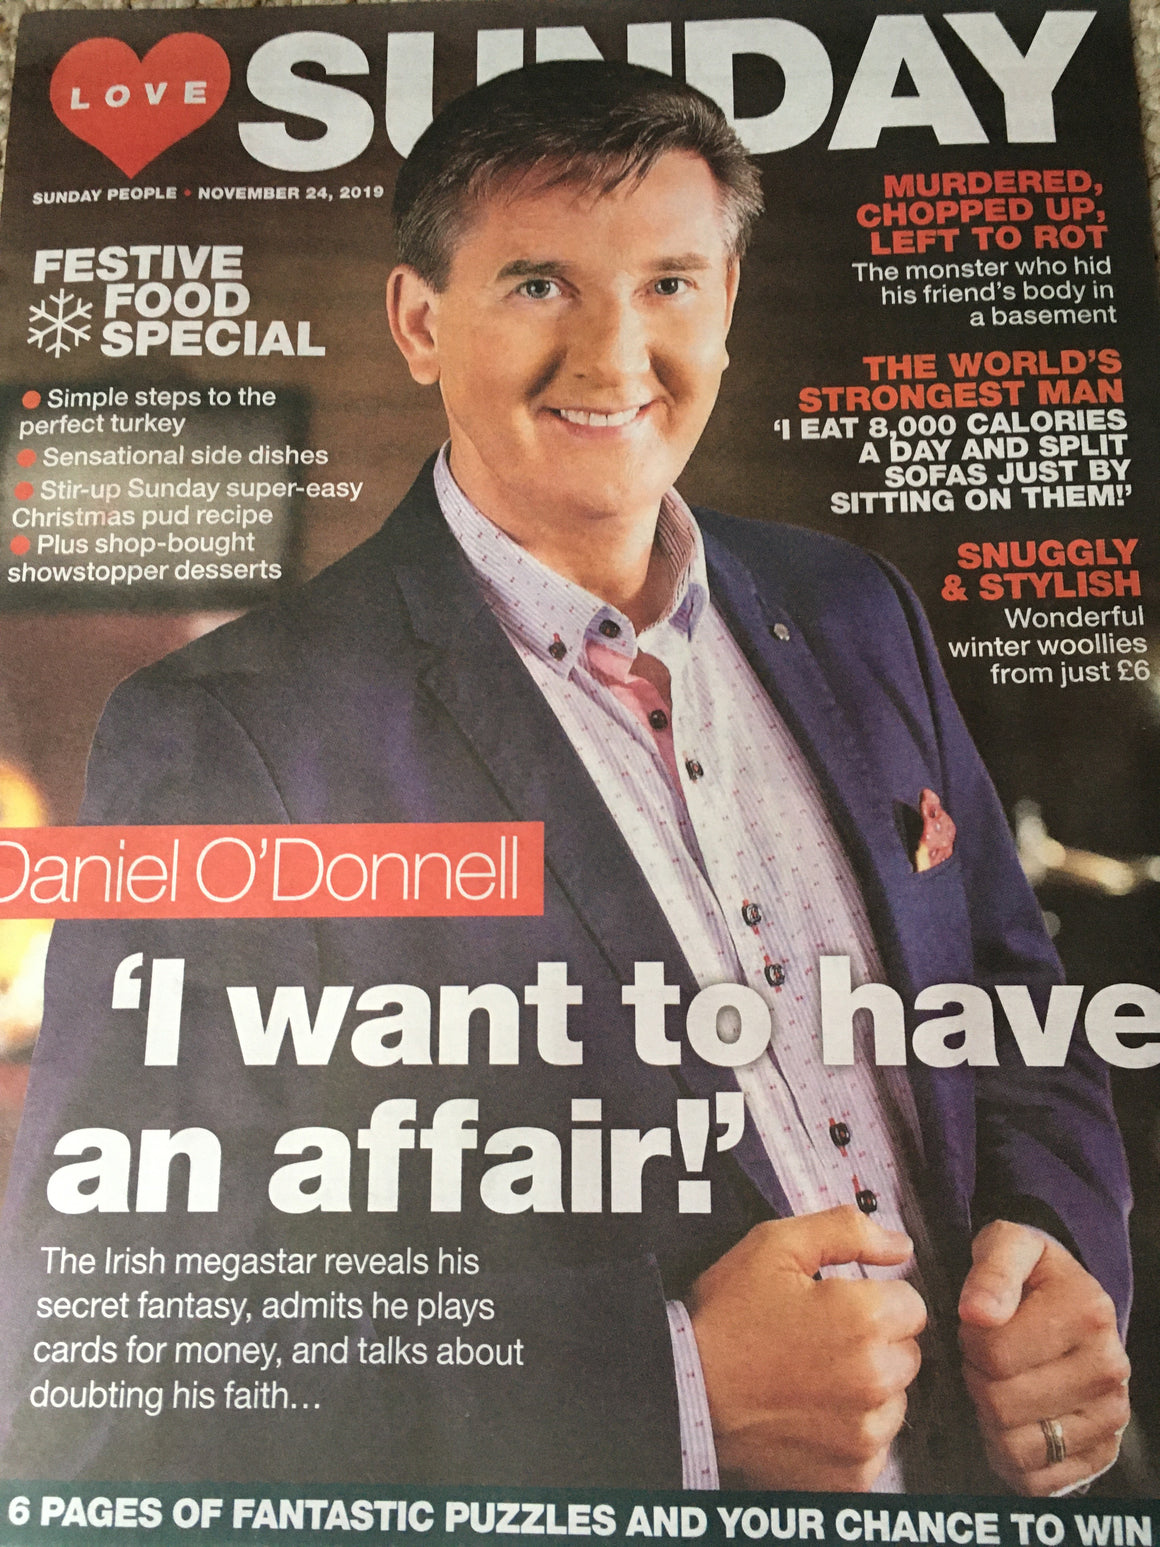 UK Love Sunday Magazine Nov 2019: DANIEL O'DONNELL COVER AND FEATURE